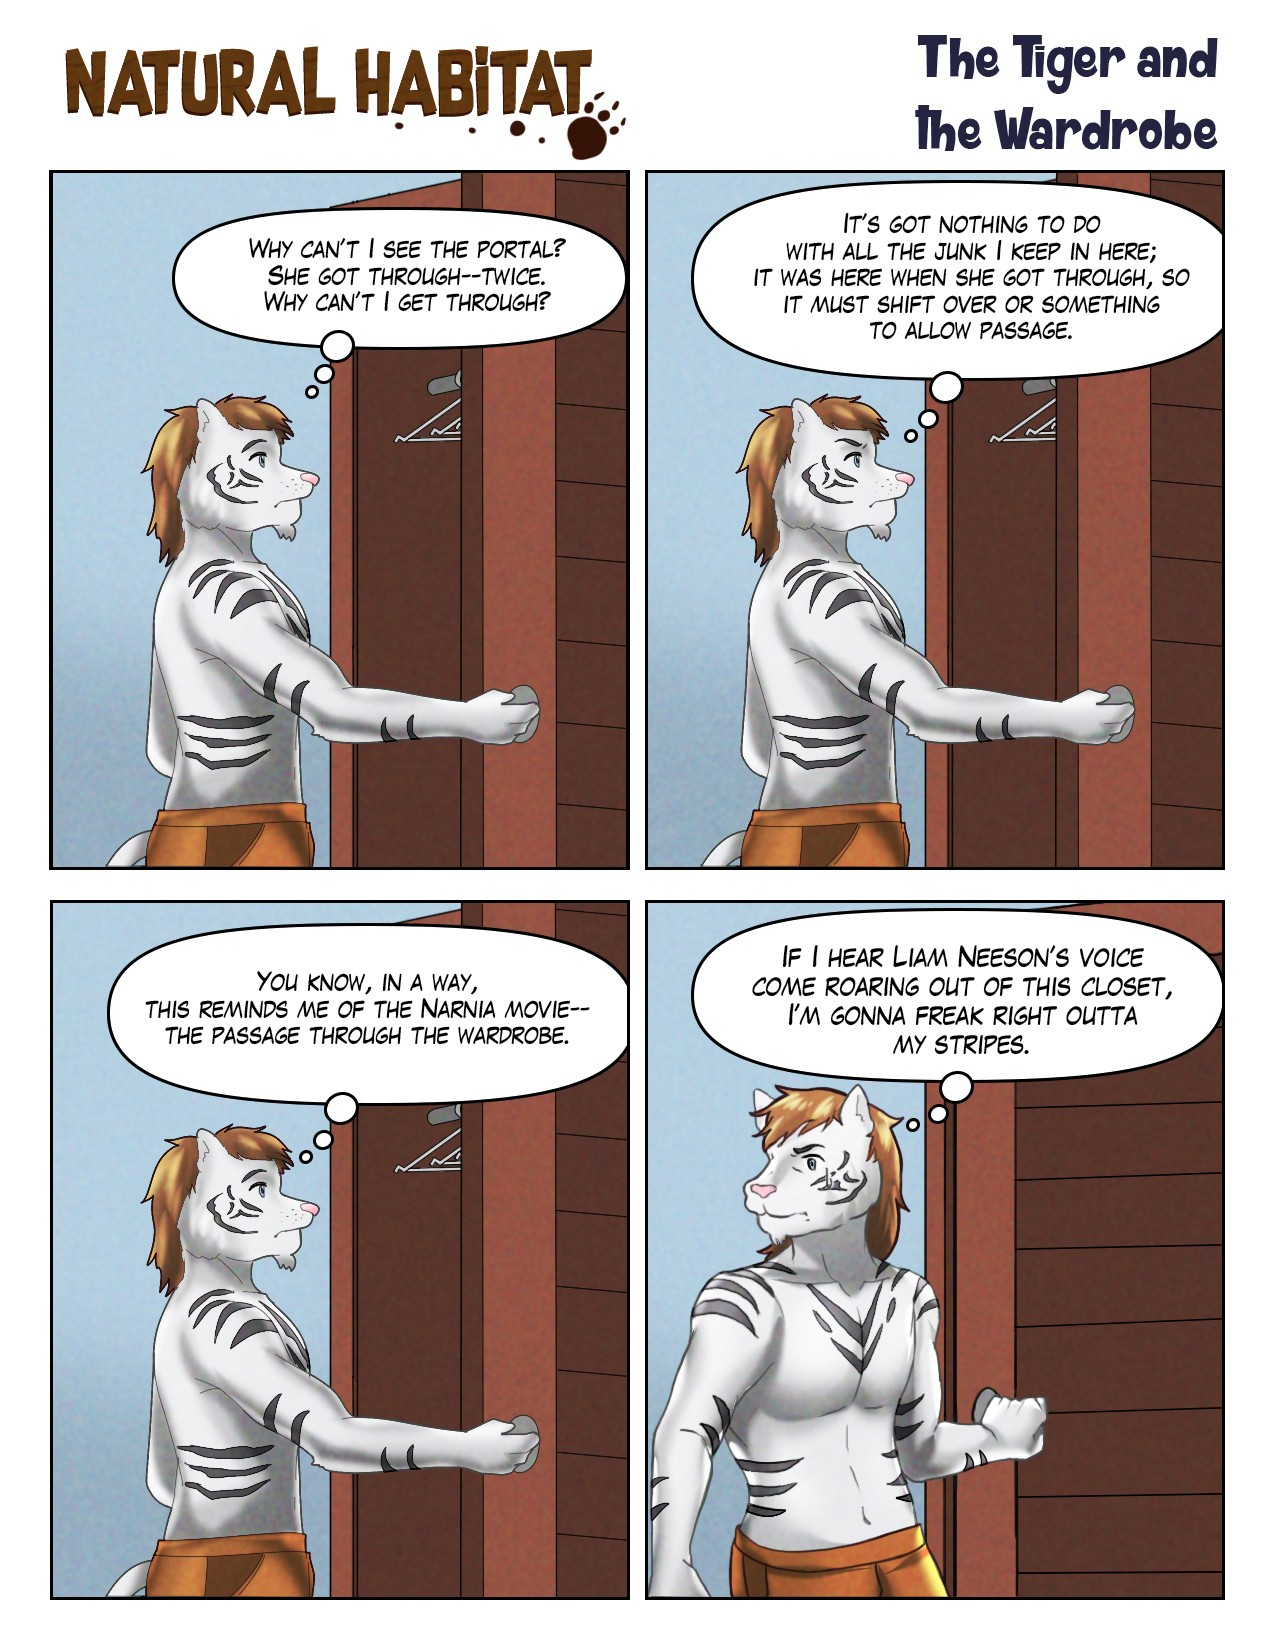 118 — The Tiger and the Wardrobe